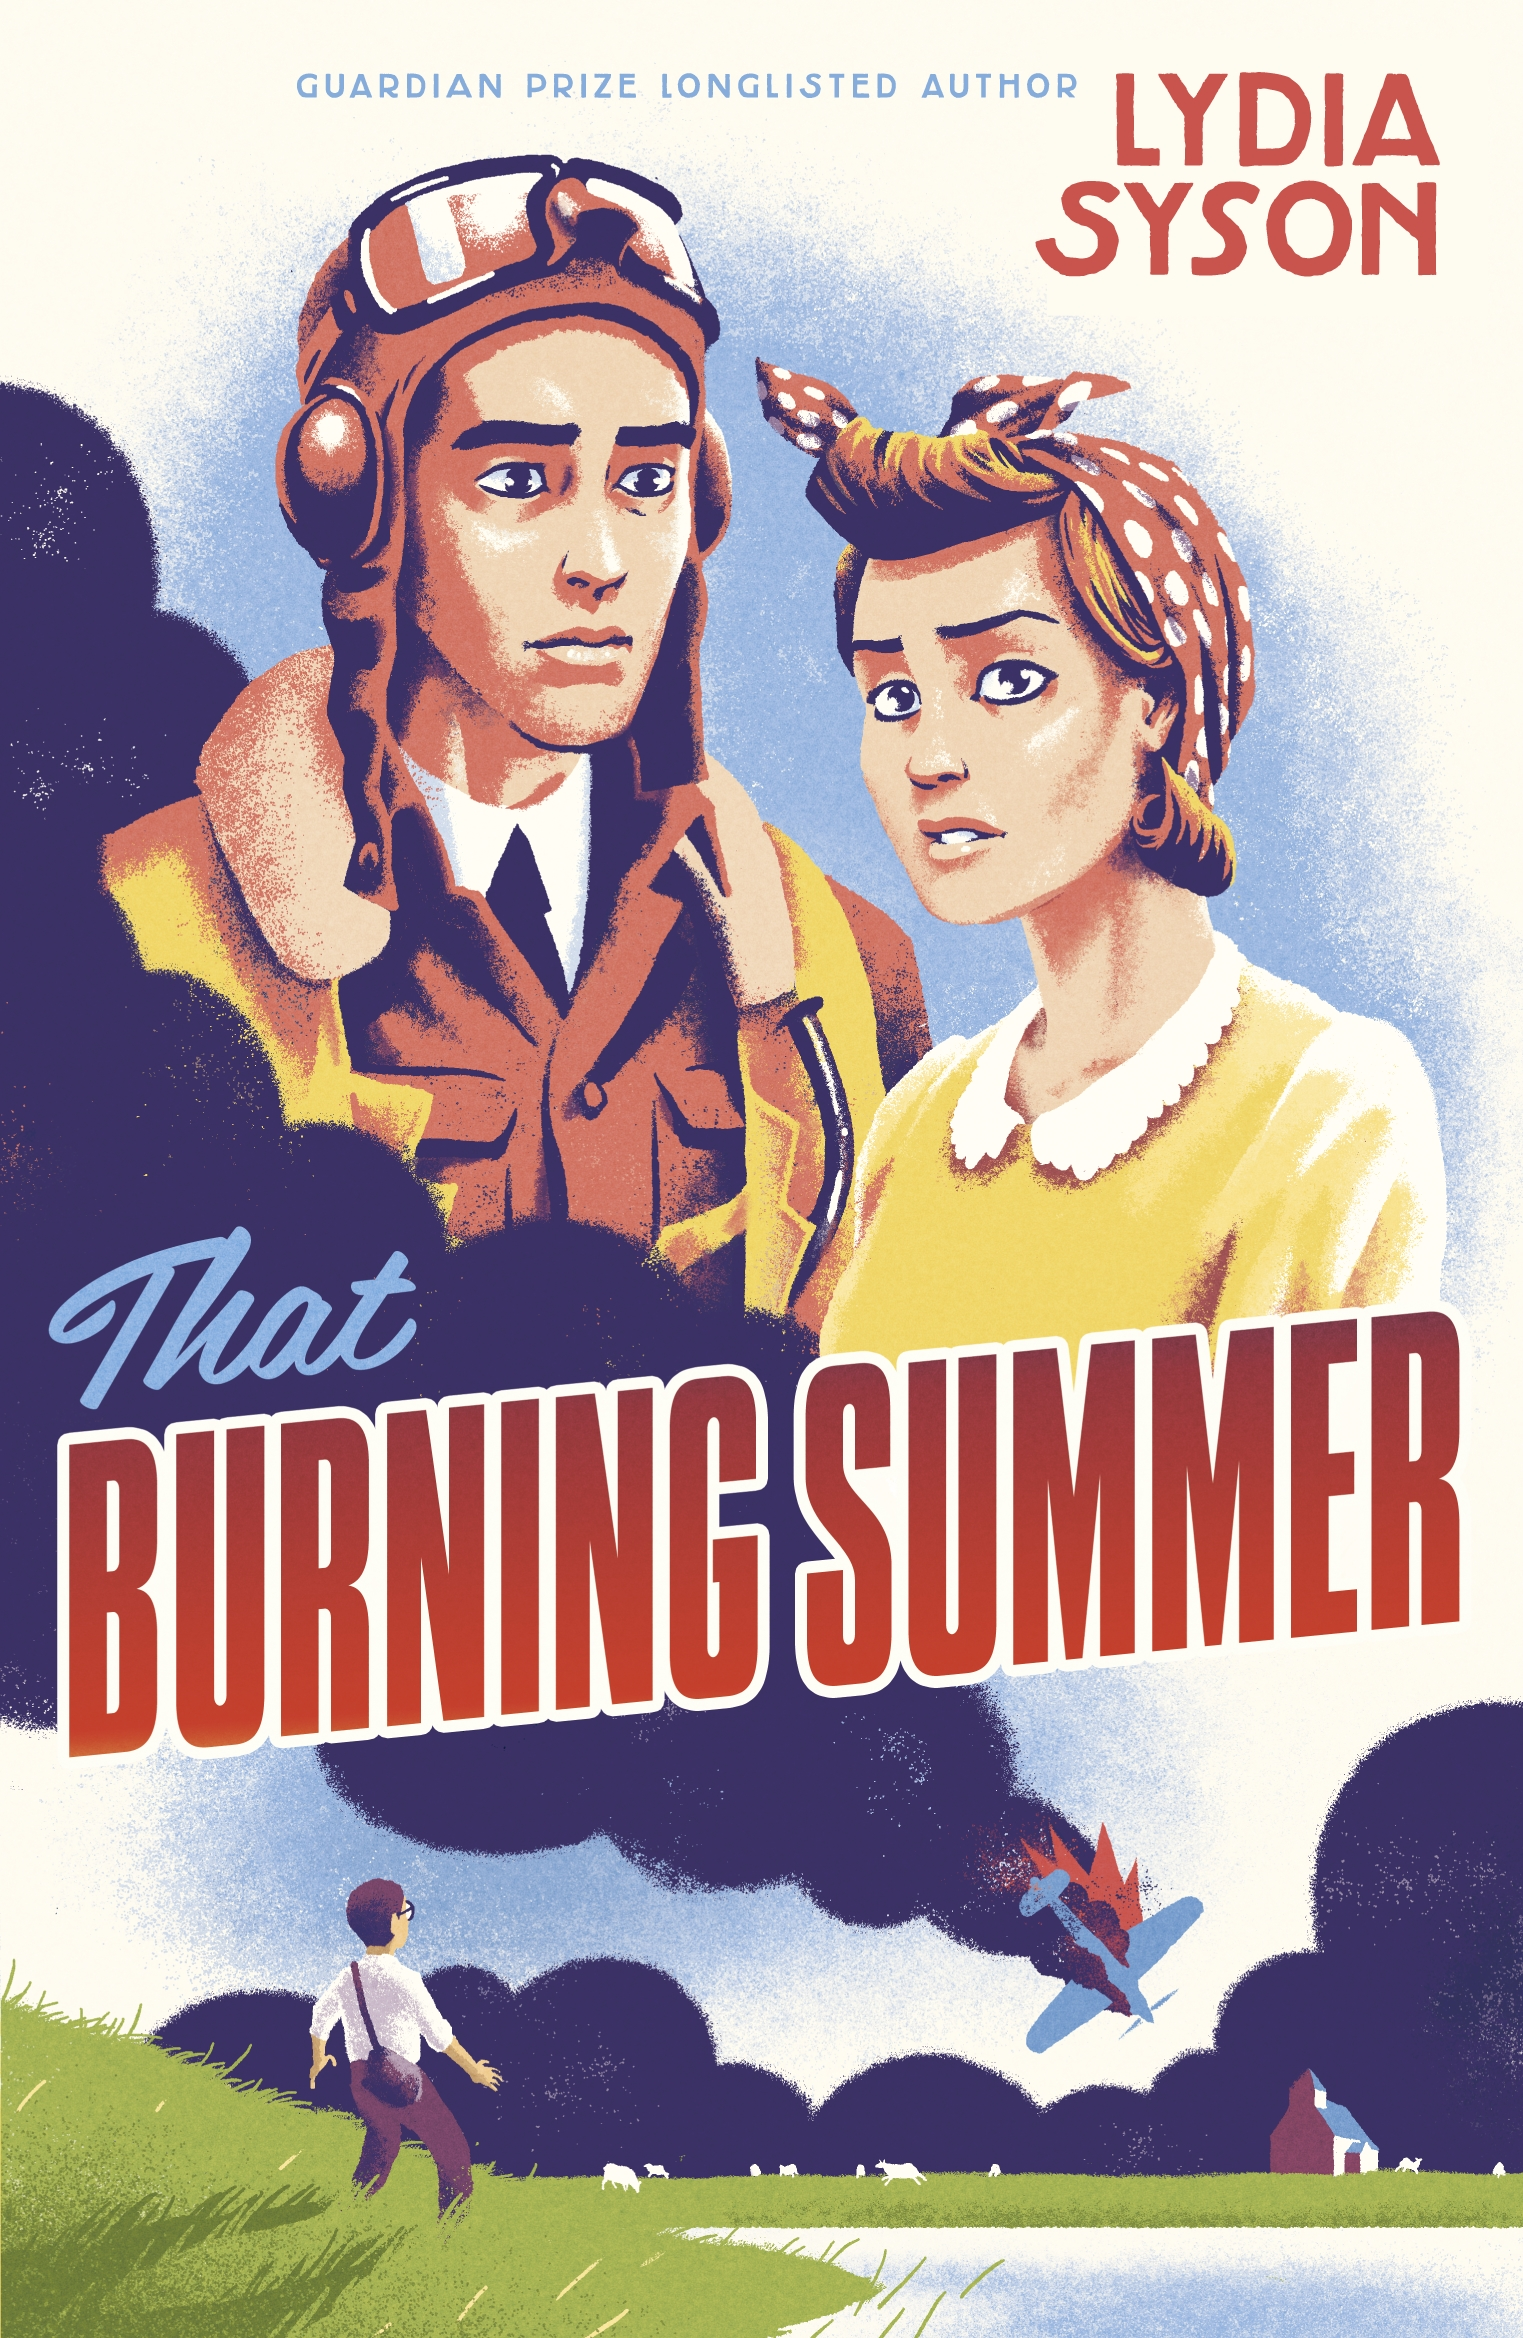 That Burning Summer by Lydia Syson